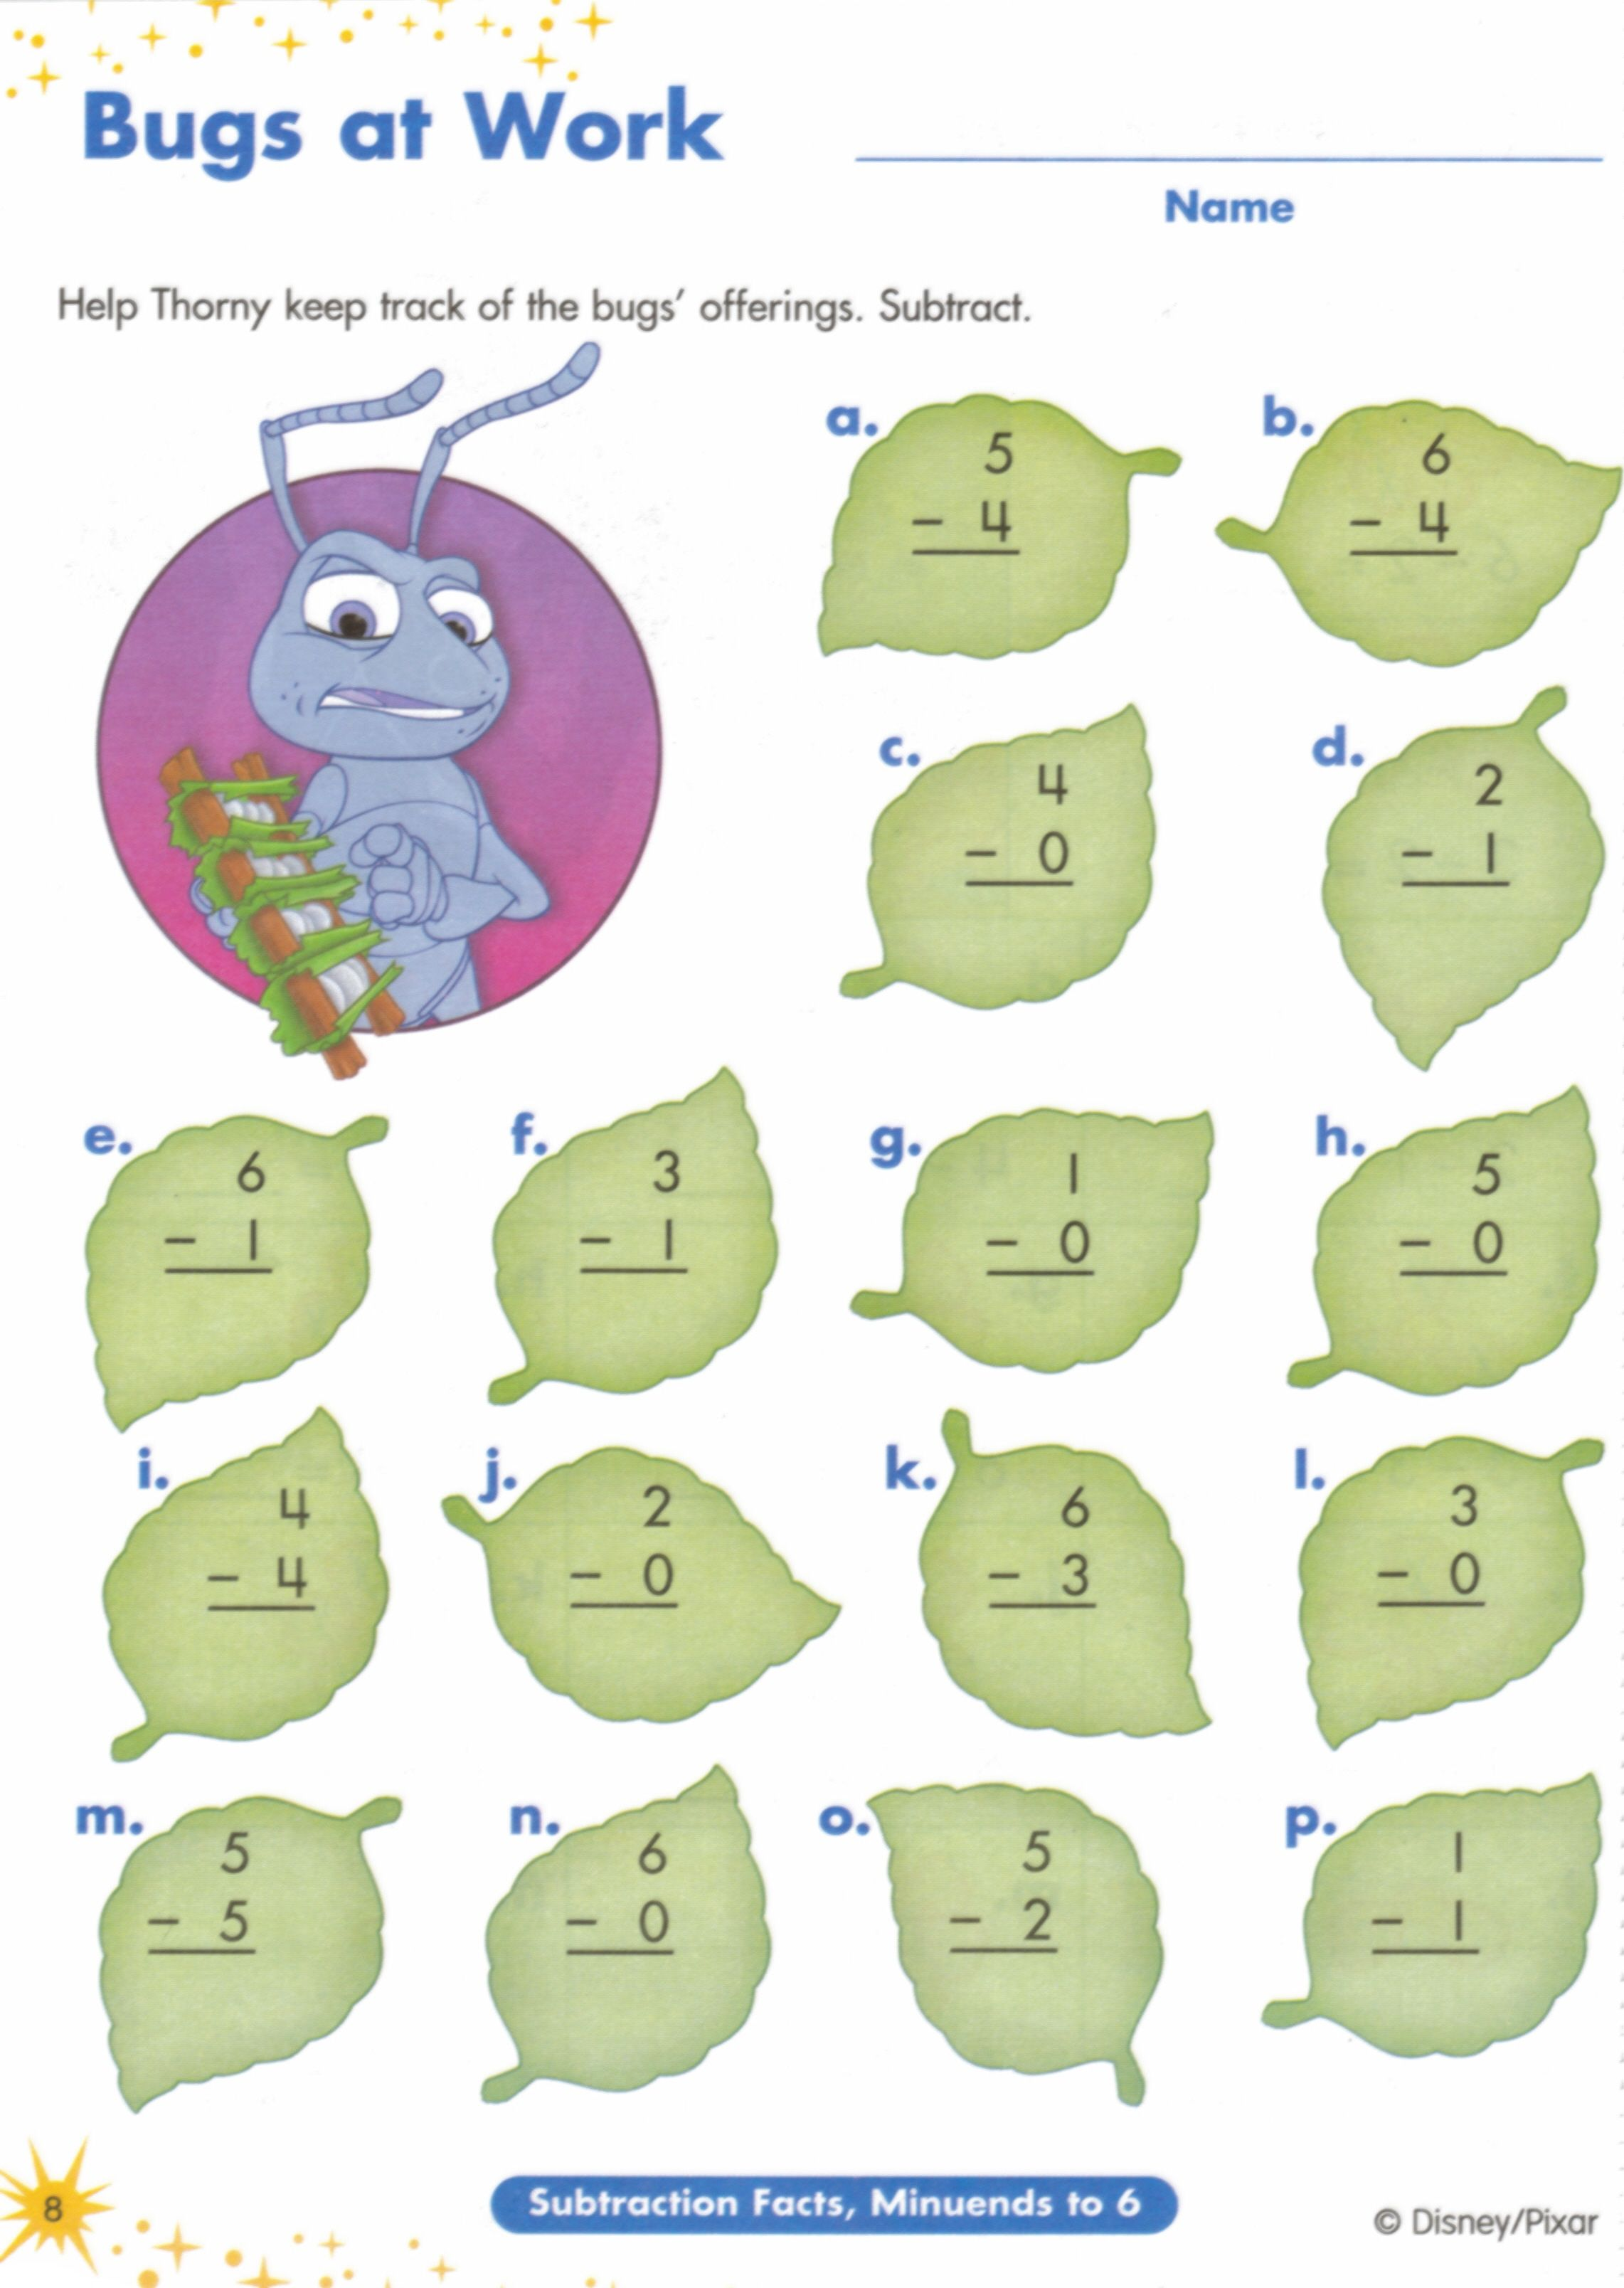 Proatmealus  Nice  Images About Worksheets On Pinterest  Fun Facts For Kids  With Outstanding  Images About Worksheets On Pinterest  Fun Facts For Kids Earth Day Worksheets And Jungles With Nice Thermometer Worksheet Nd Grade Also Worksheets For Conjunctions In Addition Th Grade English Grammar Worksheets And Hieroglyphic Worksheet As Well As Animals And Their Habitat Worksheet Additionally Labeling The Water Cycle Worksheet From Pinterestcom With Proatmealus  Outstanding  Images About Worksheets On Pinterest  Fun Facts For Kids  With Nice  Images About Worksheets On Pinterest  Fun Facts For Kids Earth Day Worksheets And Jungles And Nice Thermometer Worksheet Nd Grade Also Worksheets For Conjunctions In Addition Th Grade English Grammar Worksheets From Pinterestcom